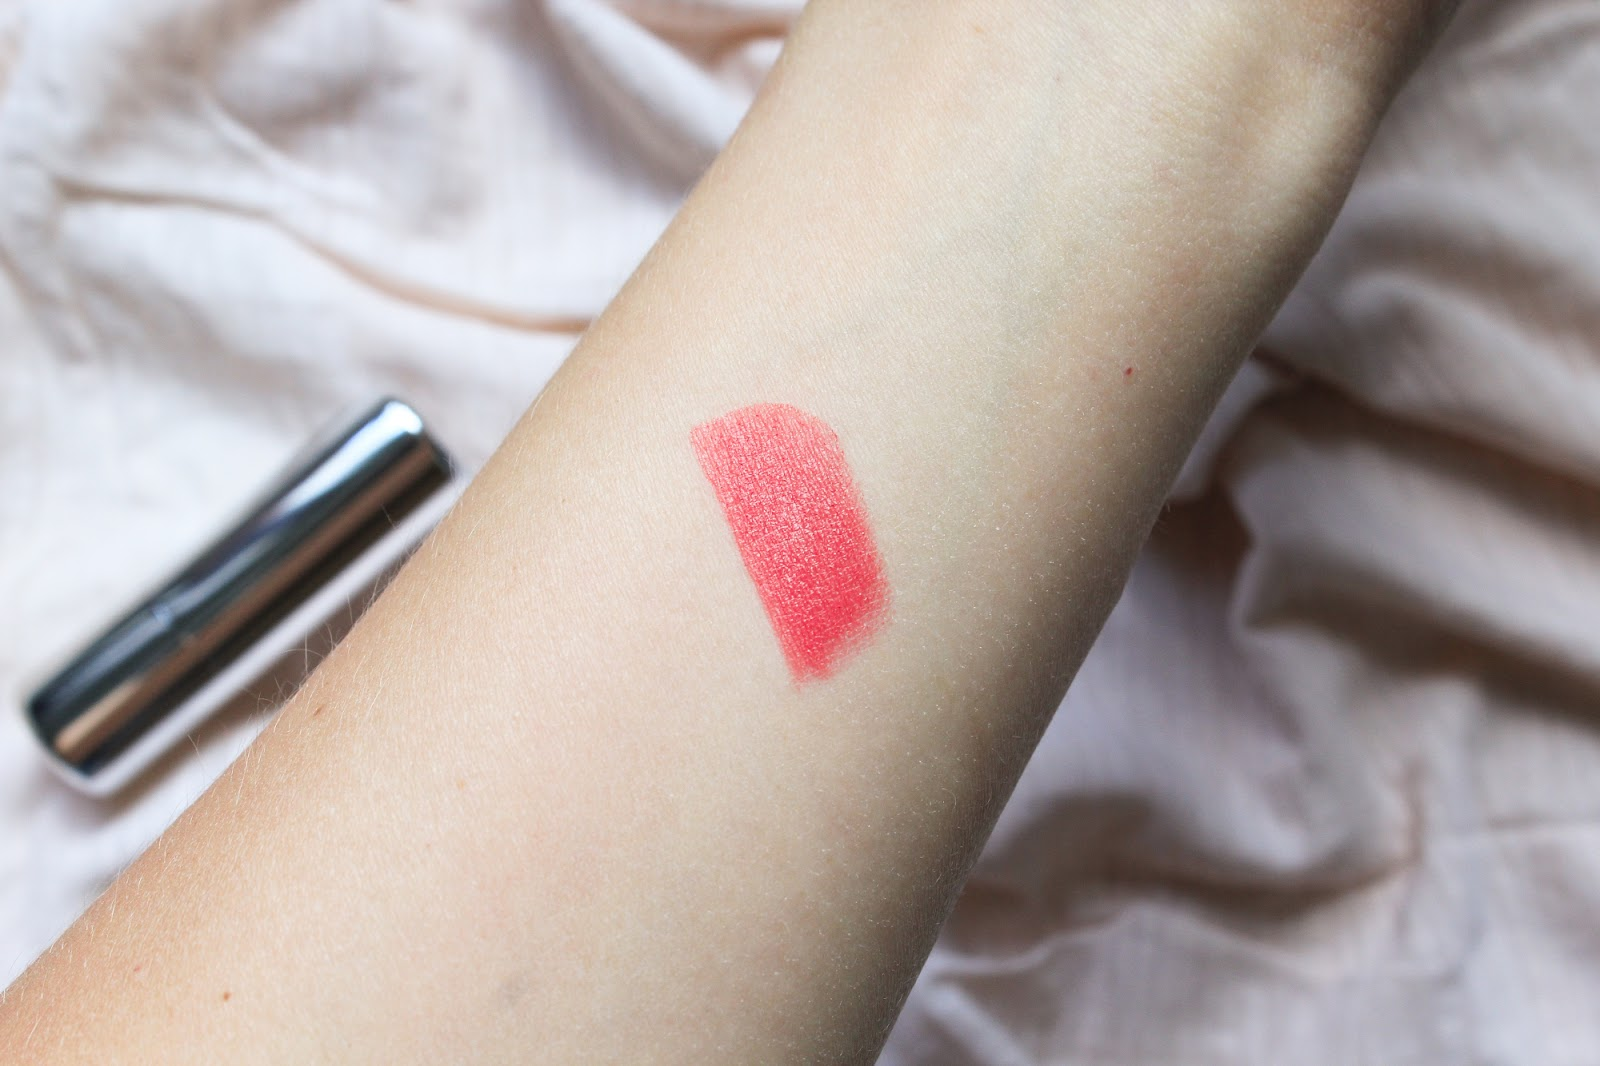 Ere Perez Olive Oil Lipstick in the shade Birthday. Love Lula. Summer Coral. Swatch